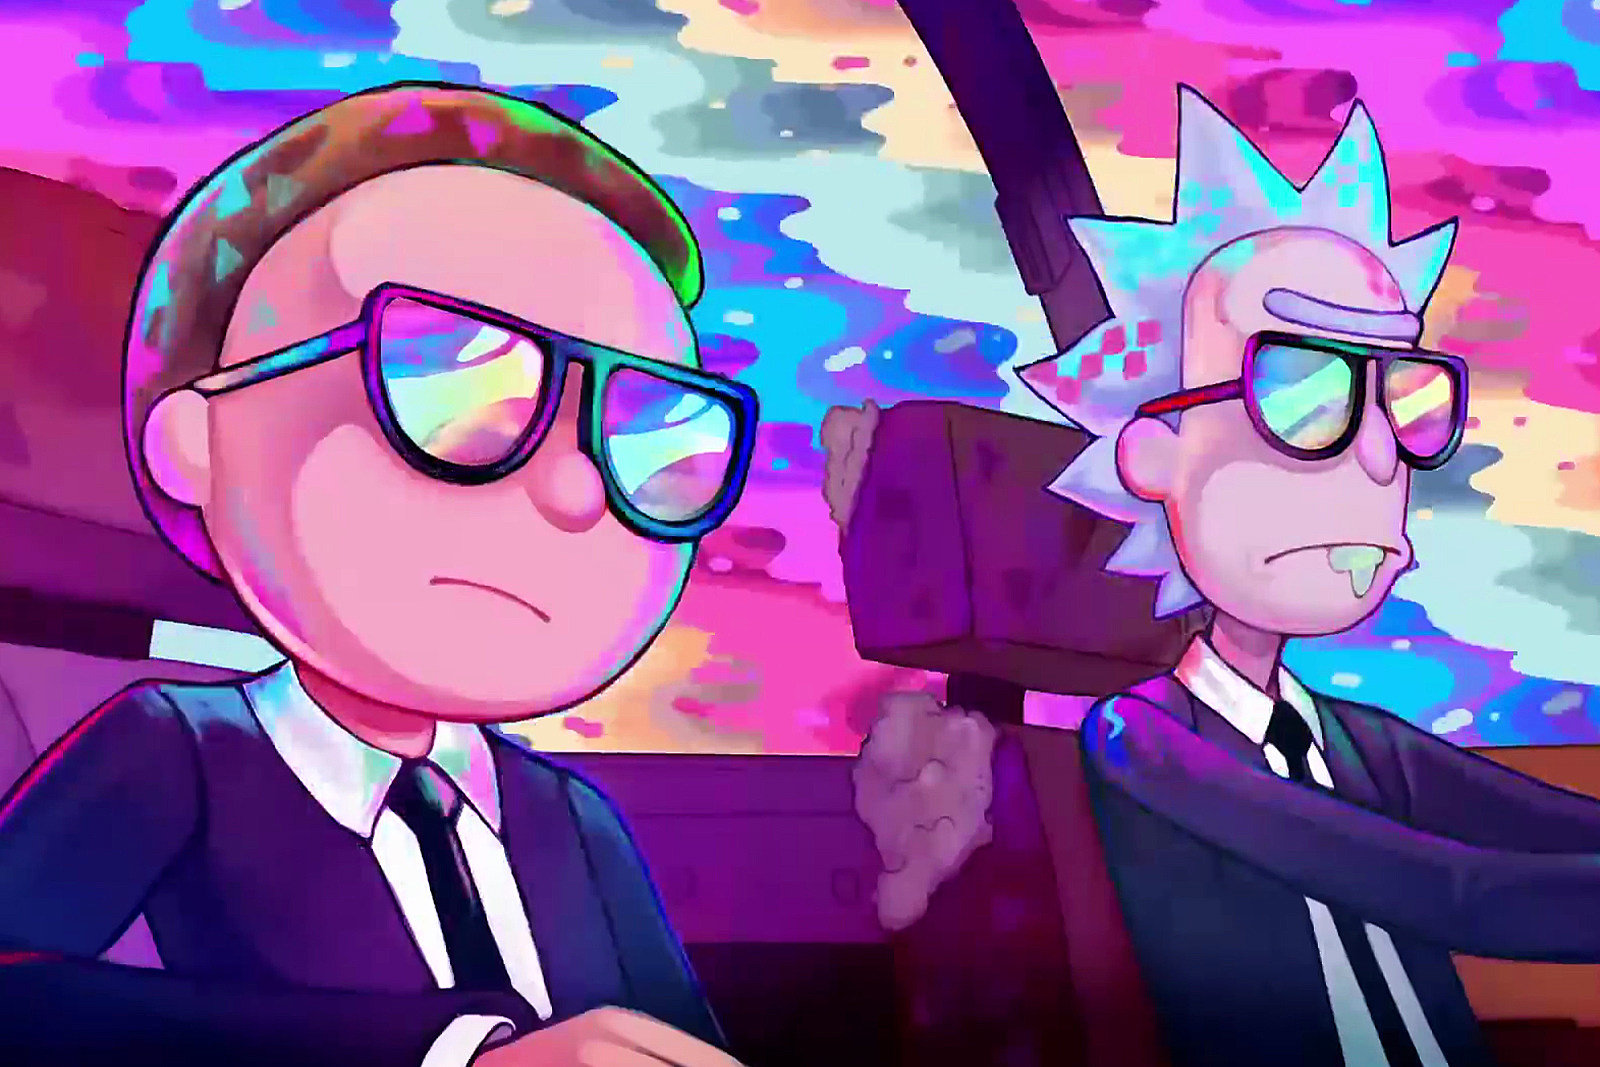 Rick and Morty' Return in New Deadmau5 New Year's Sketch